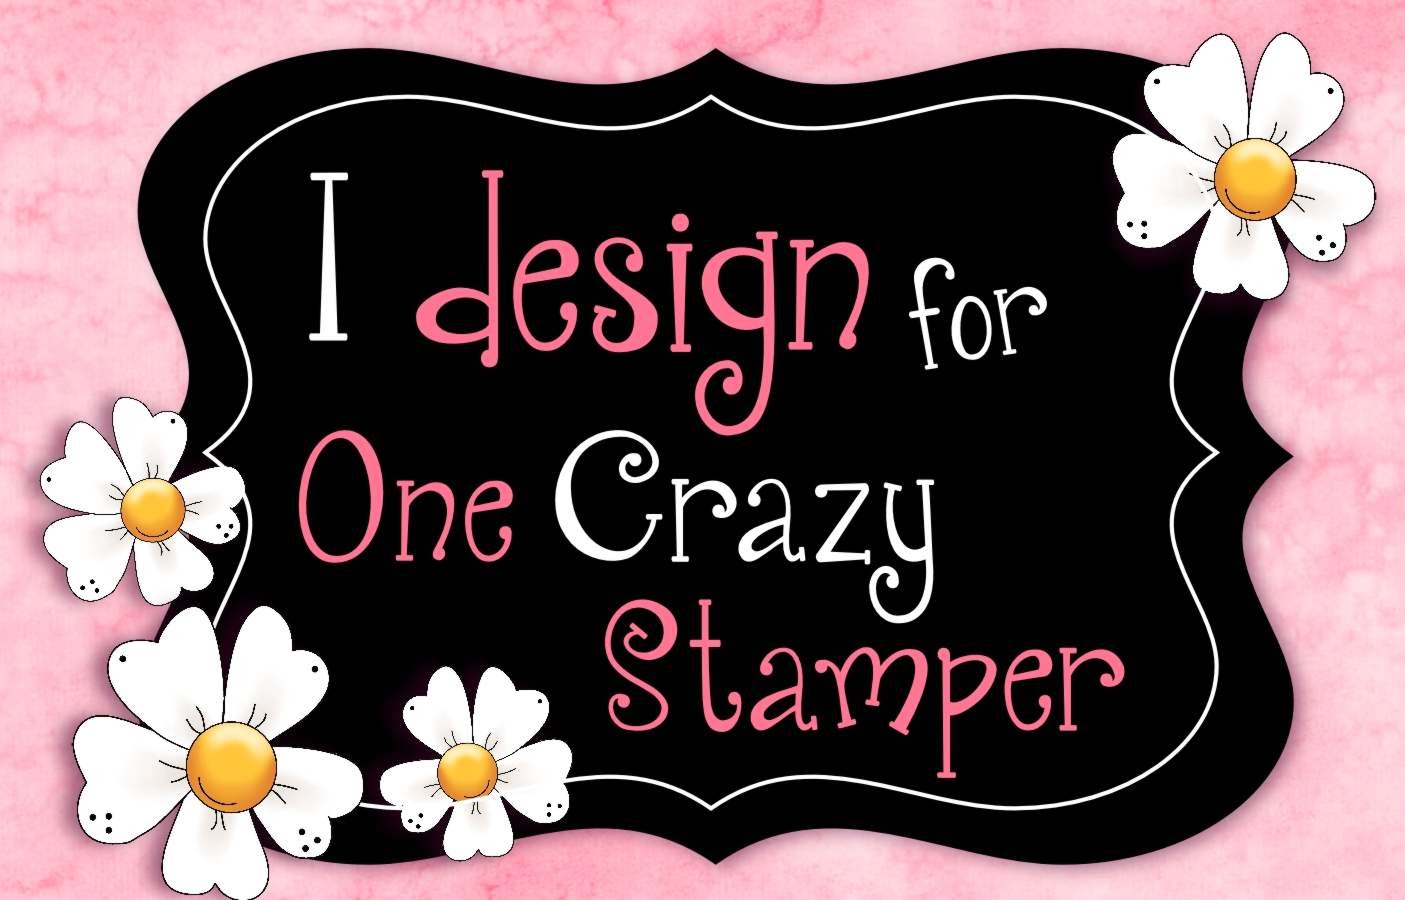 One Crazy Stamper